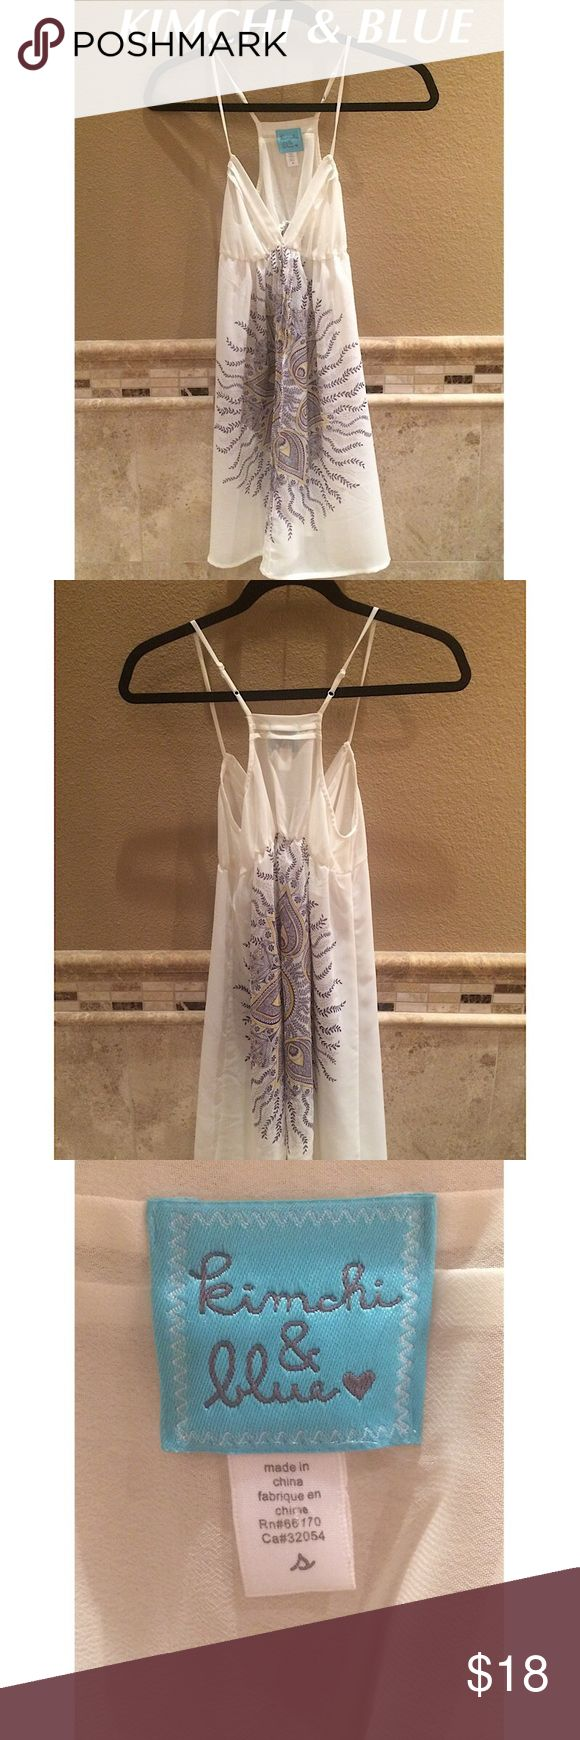 Urban Outfitters KIMCHI & BLUE Sheer Dress Perfect for the spring & summer!  A sheer KIMCHI & BLUE by Urban Outfitters babydoll dress in cream with a purple and yellow design on both front and back. Other ideas for wear: as a long top to wear over tight capris or even lingerie.  Pre-owned, probably worn a couple of times & in excellent condition.  Recommend a slip of some sort.  Super cute!  Ask all questions prior to purchase. Kimchi Blue Dresses